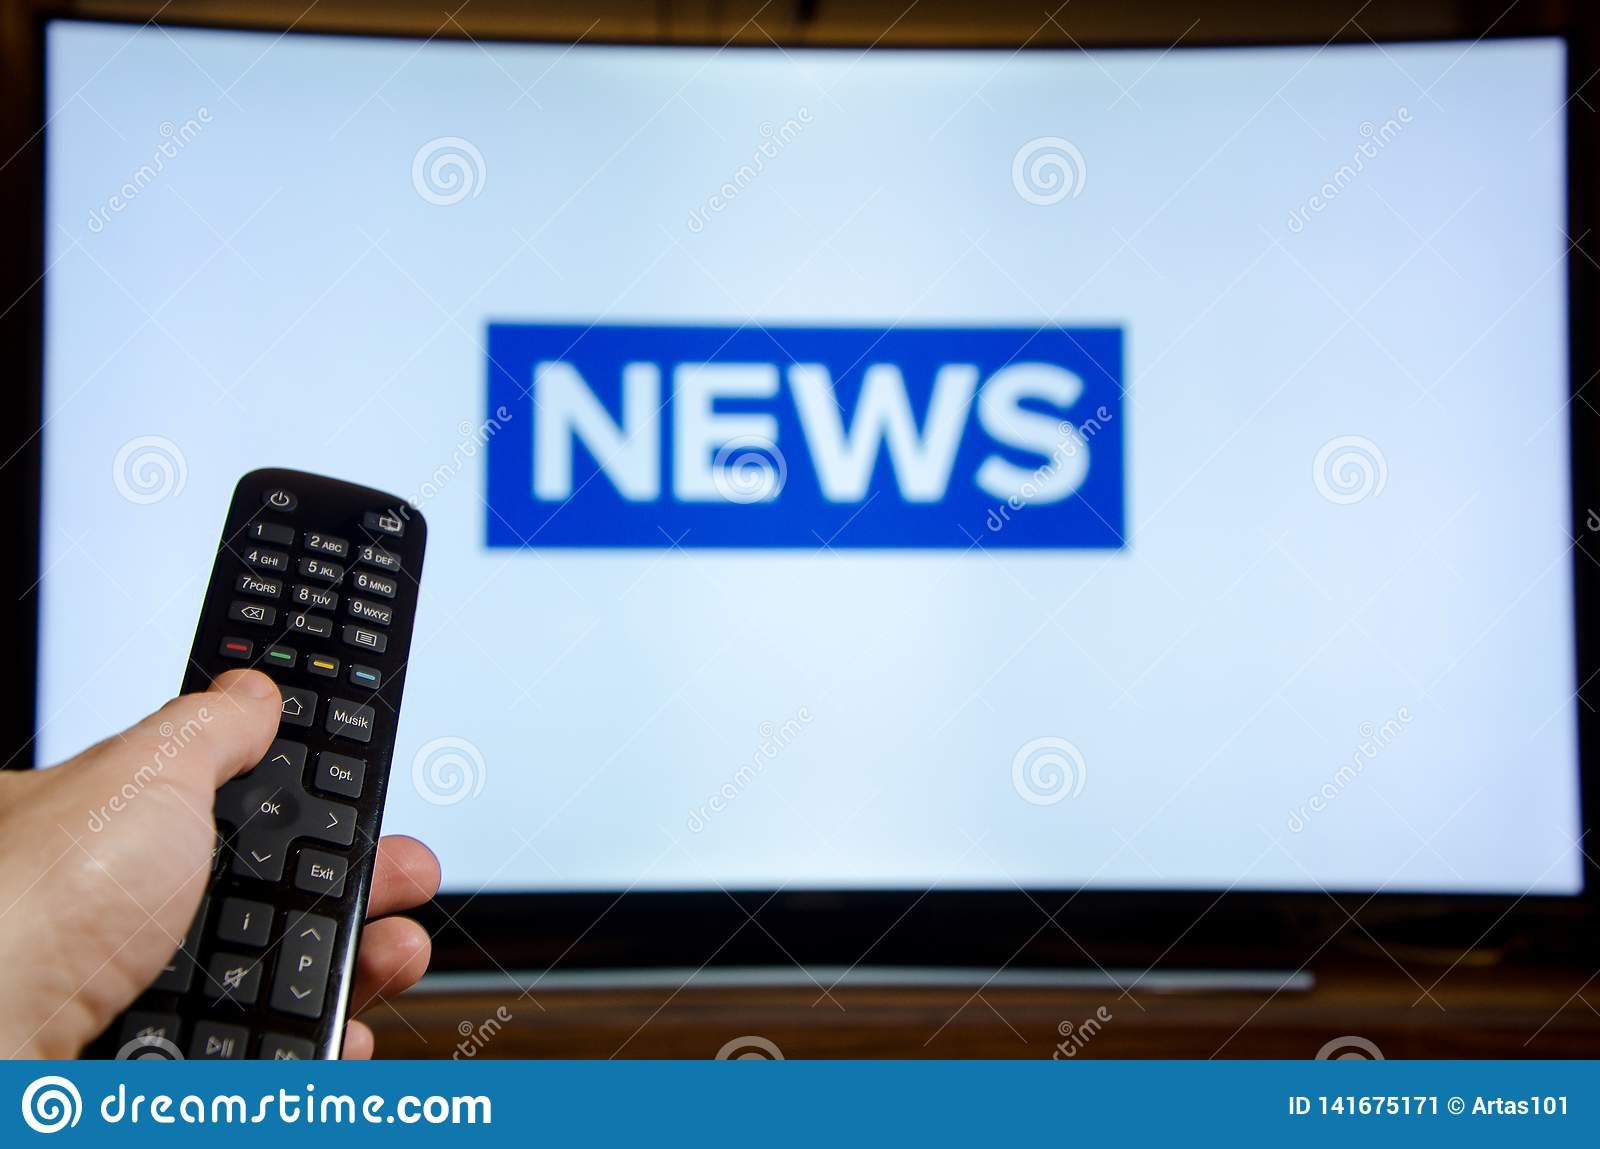 Man watching News on TV and using remote controller